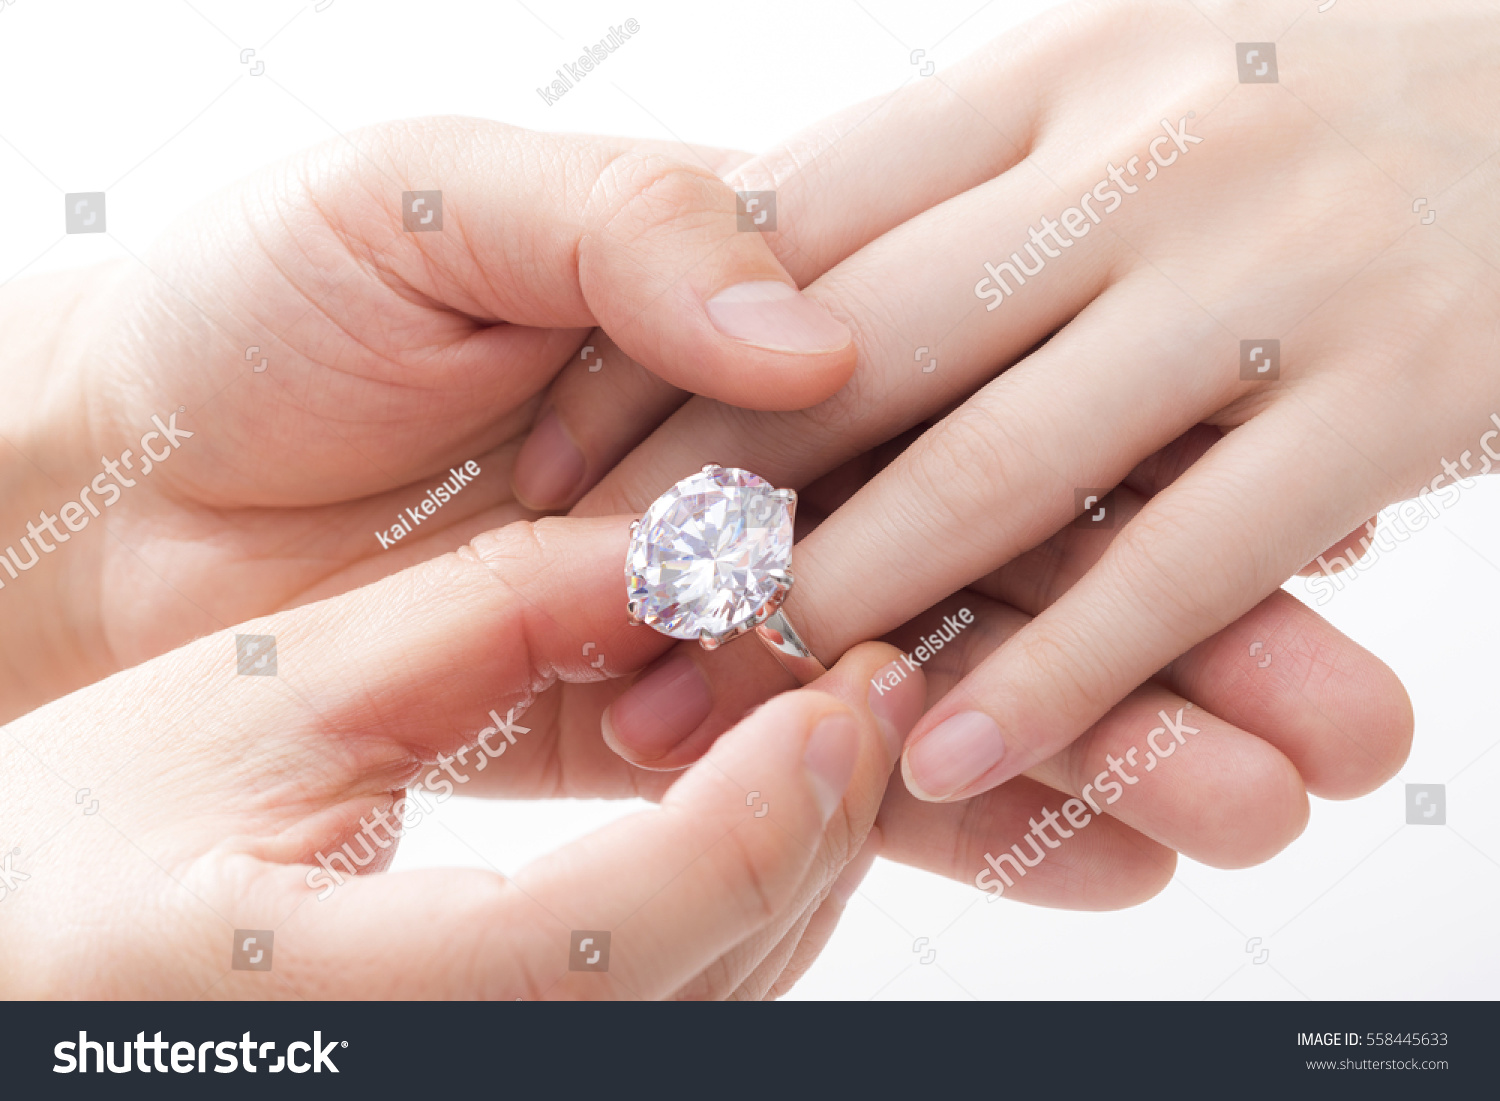 Engagement Ring On Hands Women Stock Photo 558445633 - Shutterstock